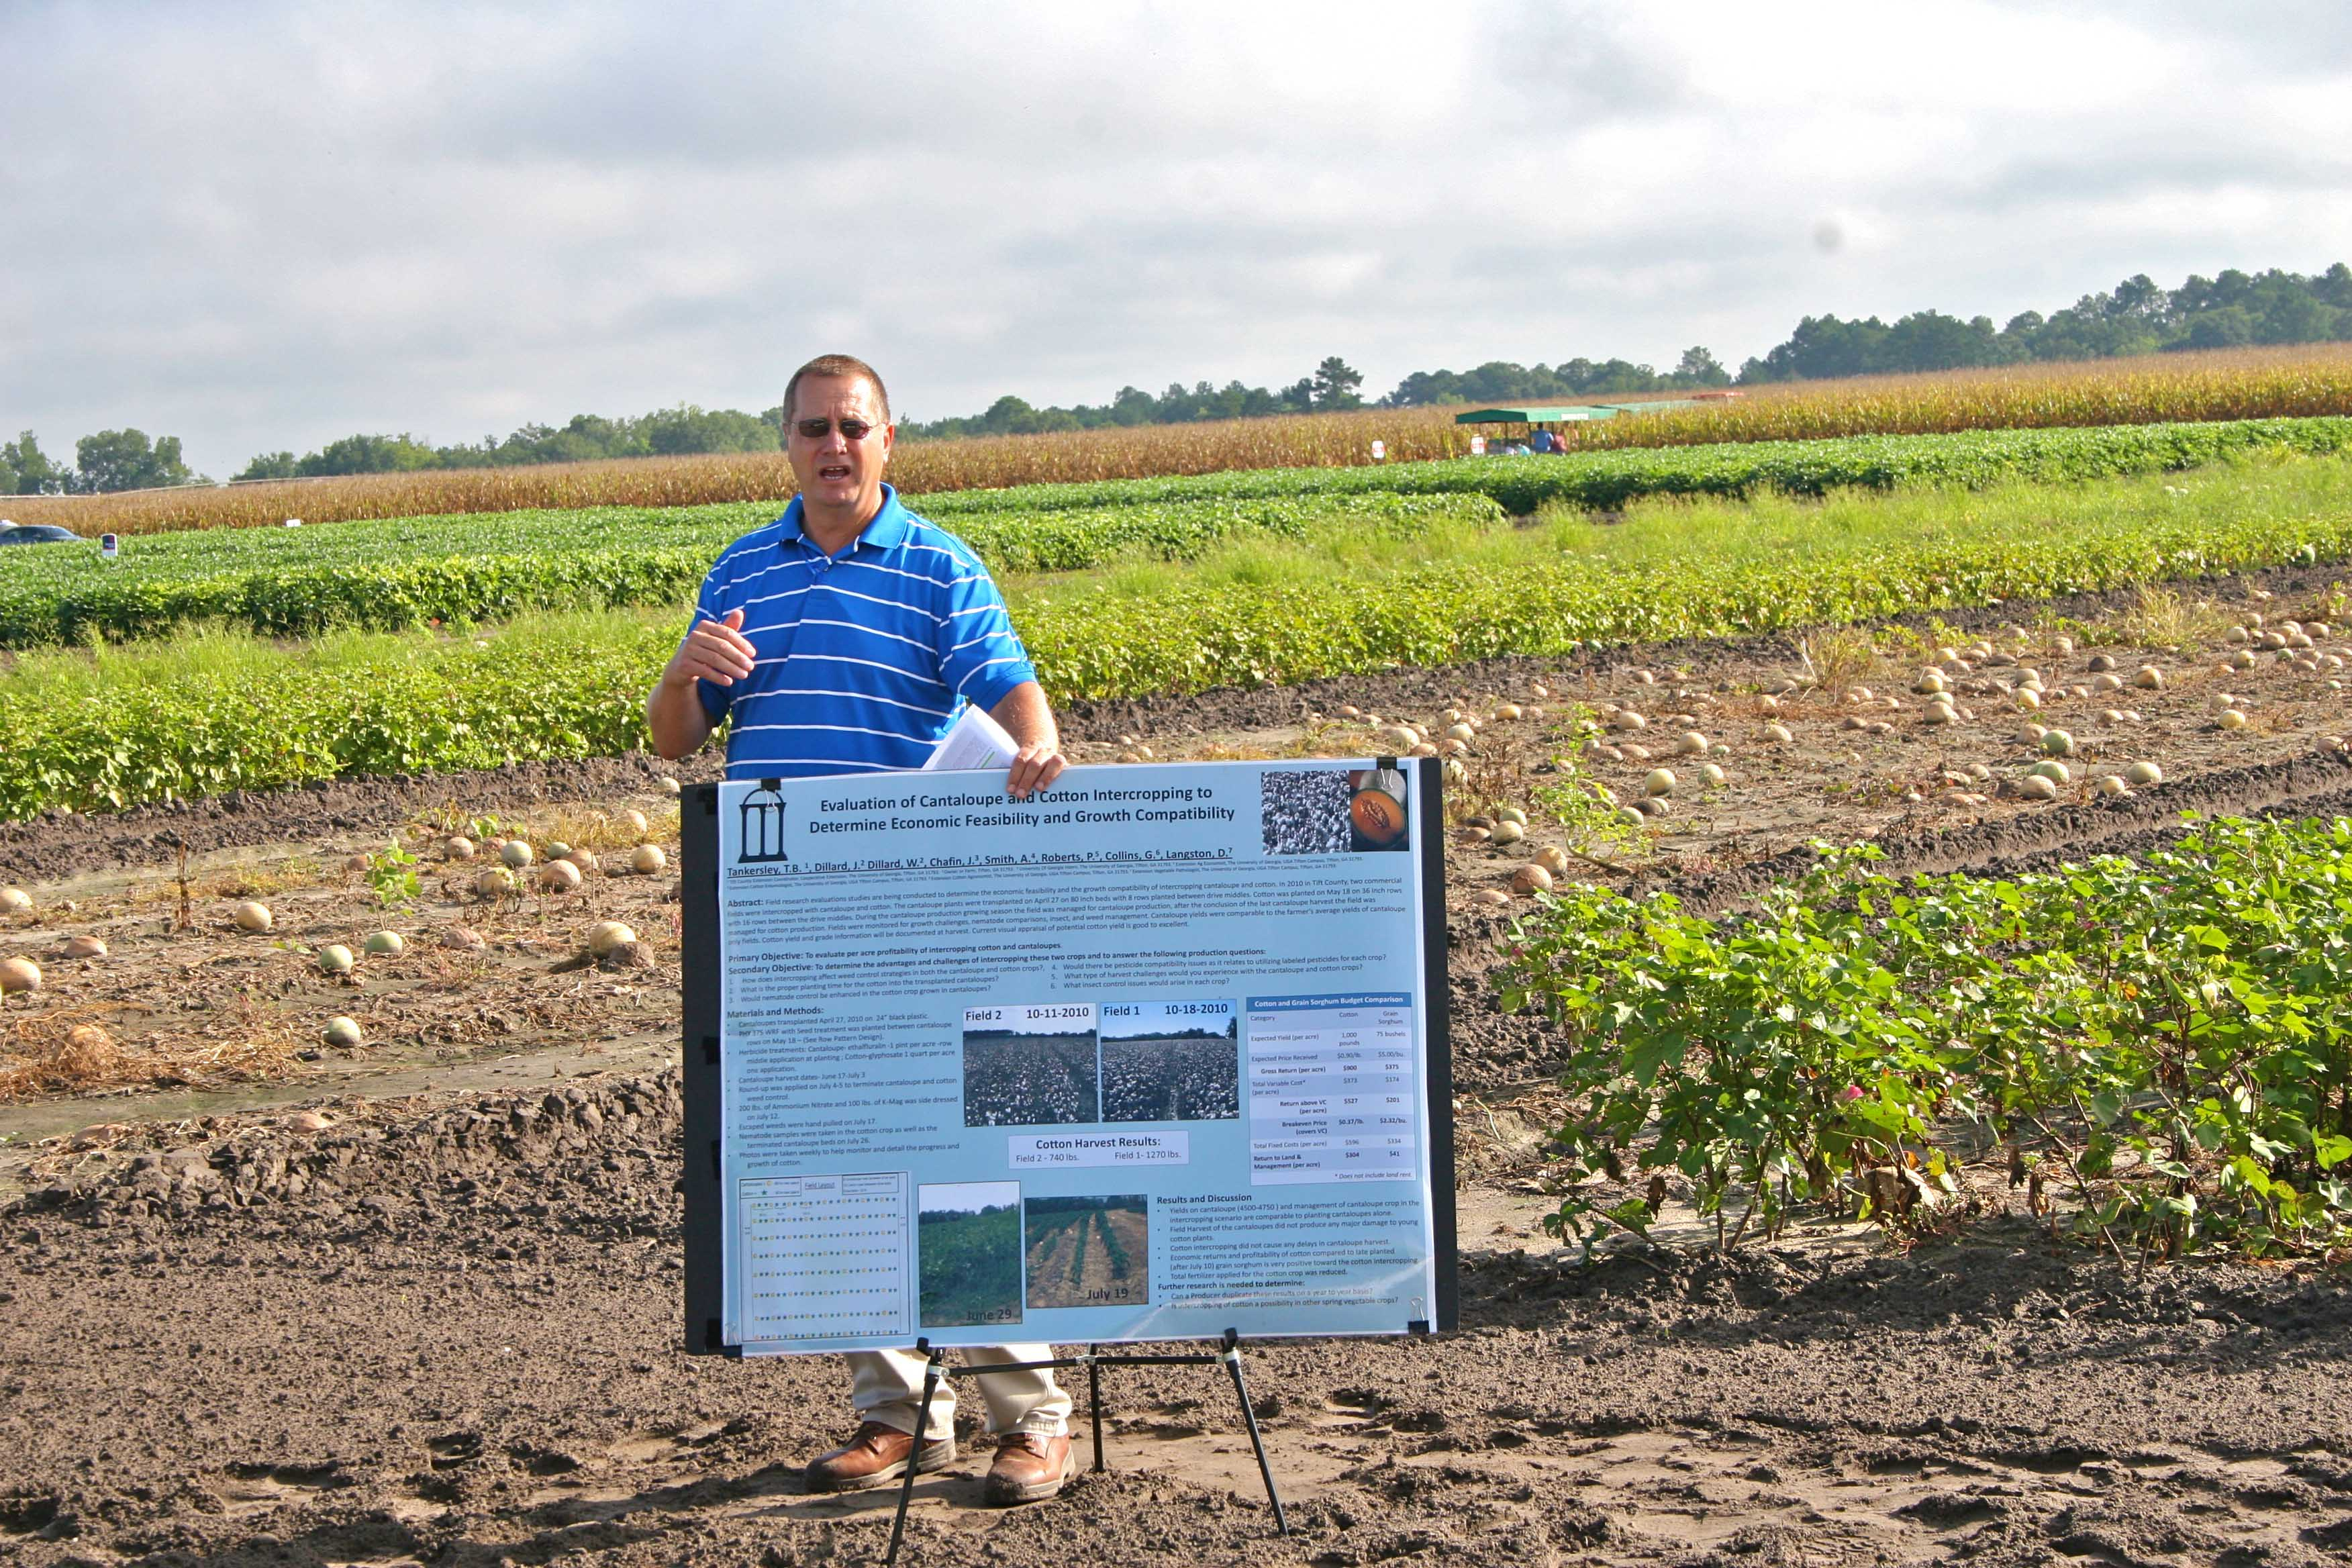 Tift County Extension Coordinator Brian Tankersley talks about intercropping cantaloupe and cotton at the 2012 Sunbelt Ag Expo Field Day.